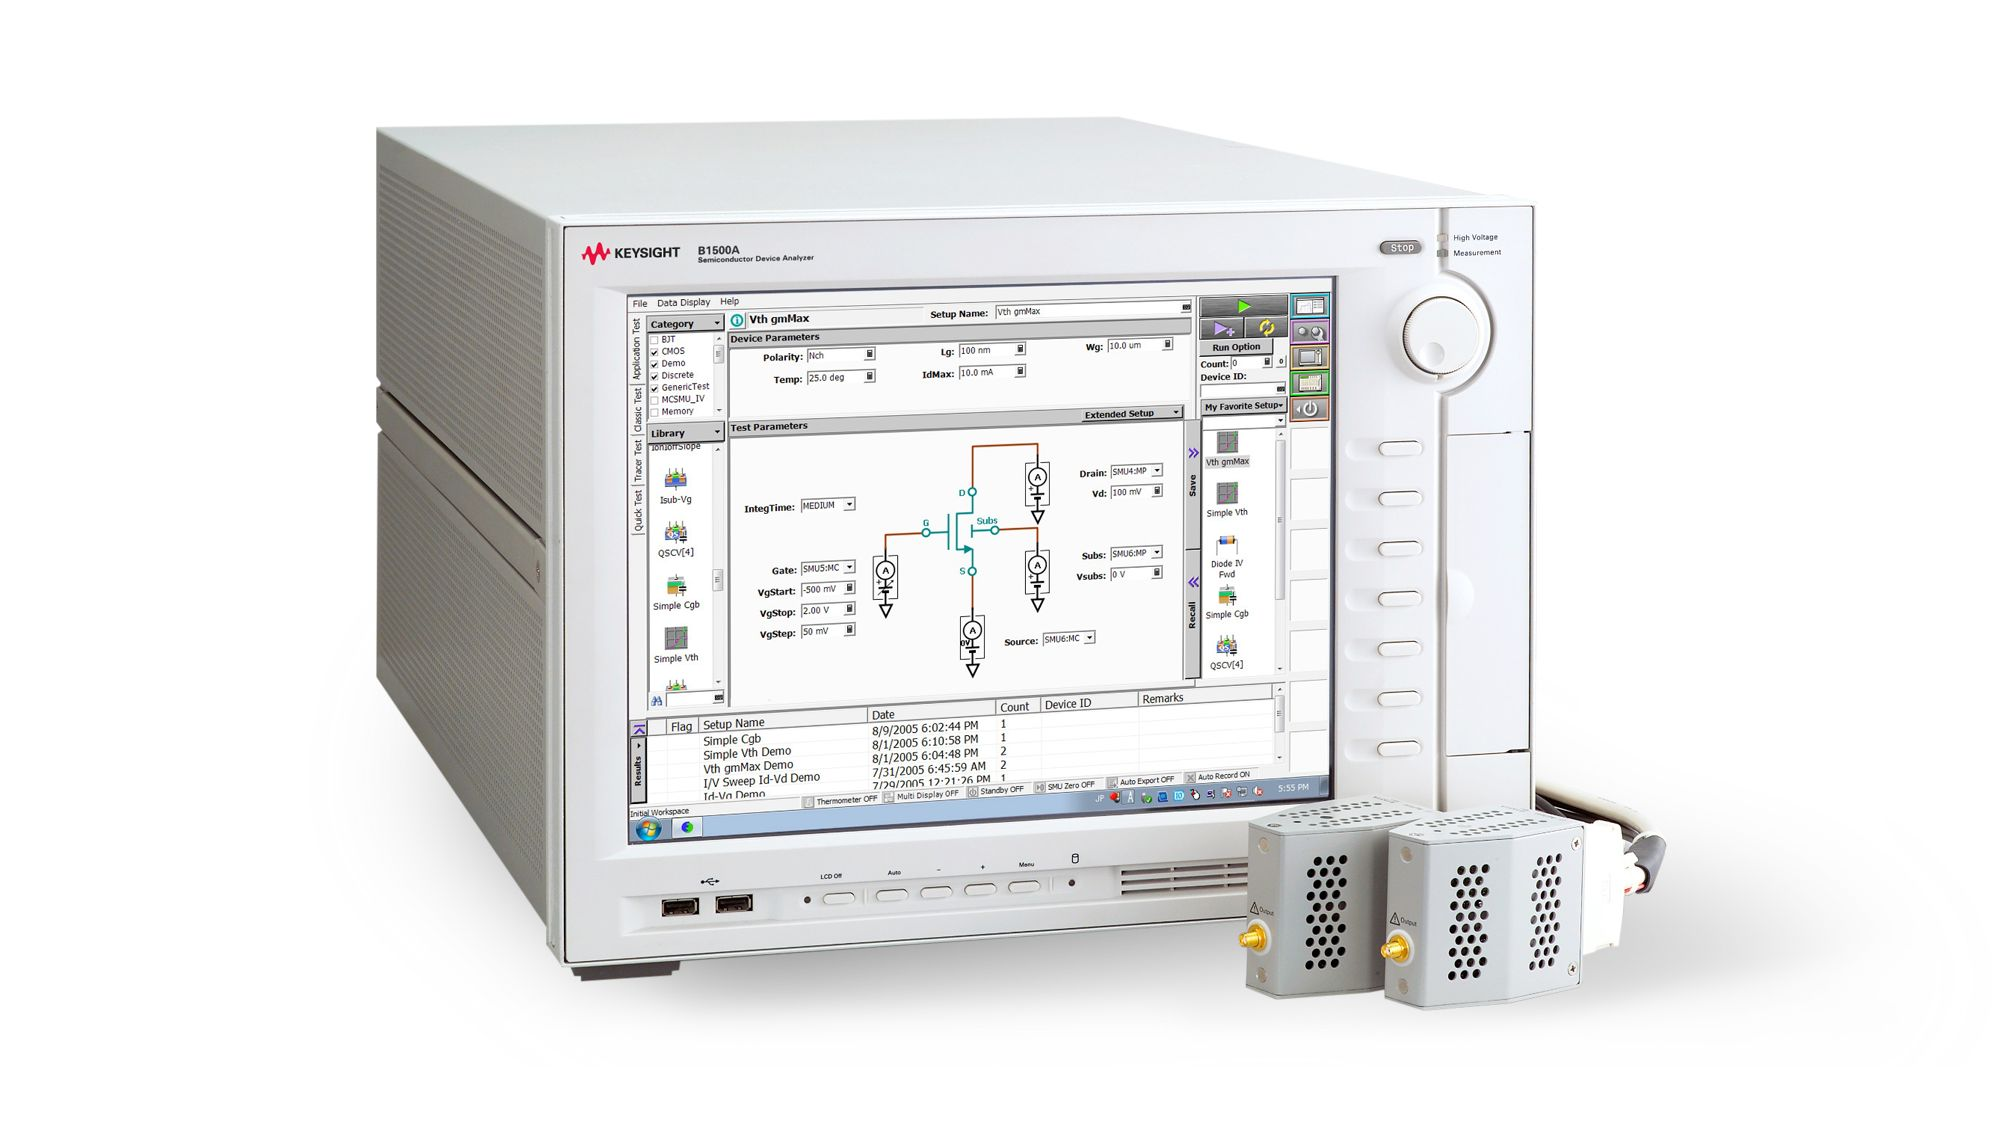 Semiconductor Keysight Dc Semiconductors And Digital Electronics In An Easy To Understand Device Analyzers